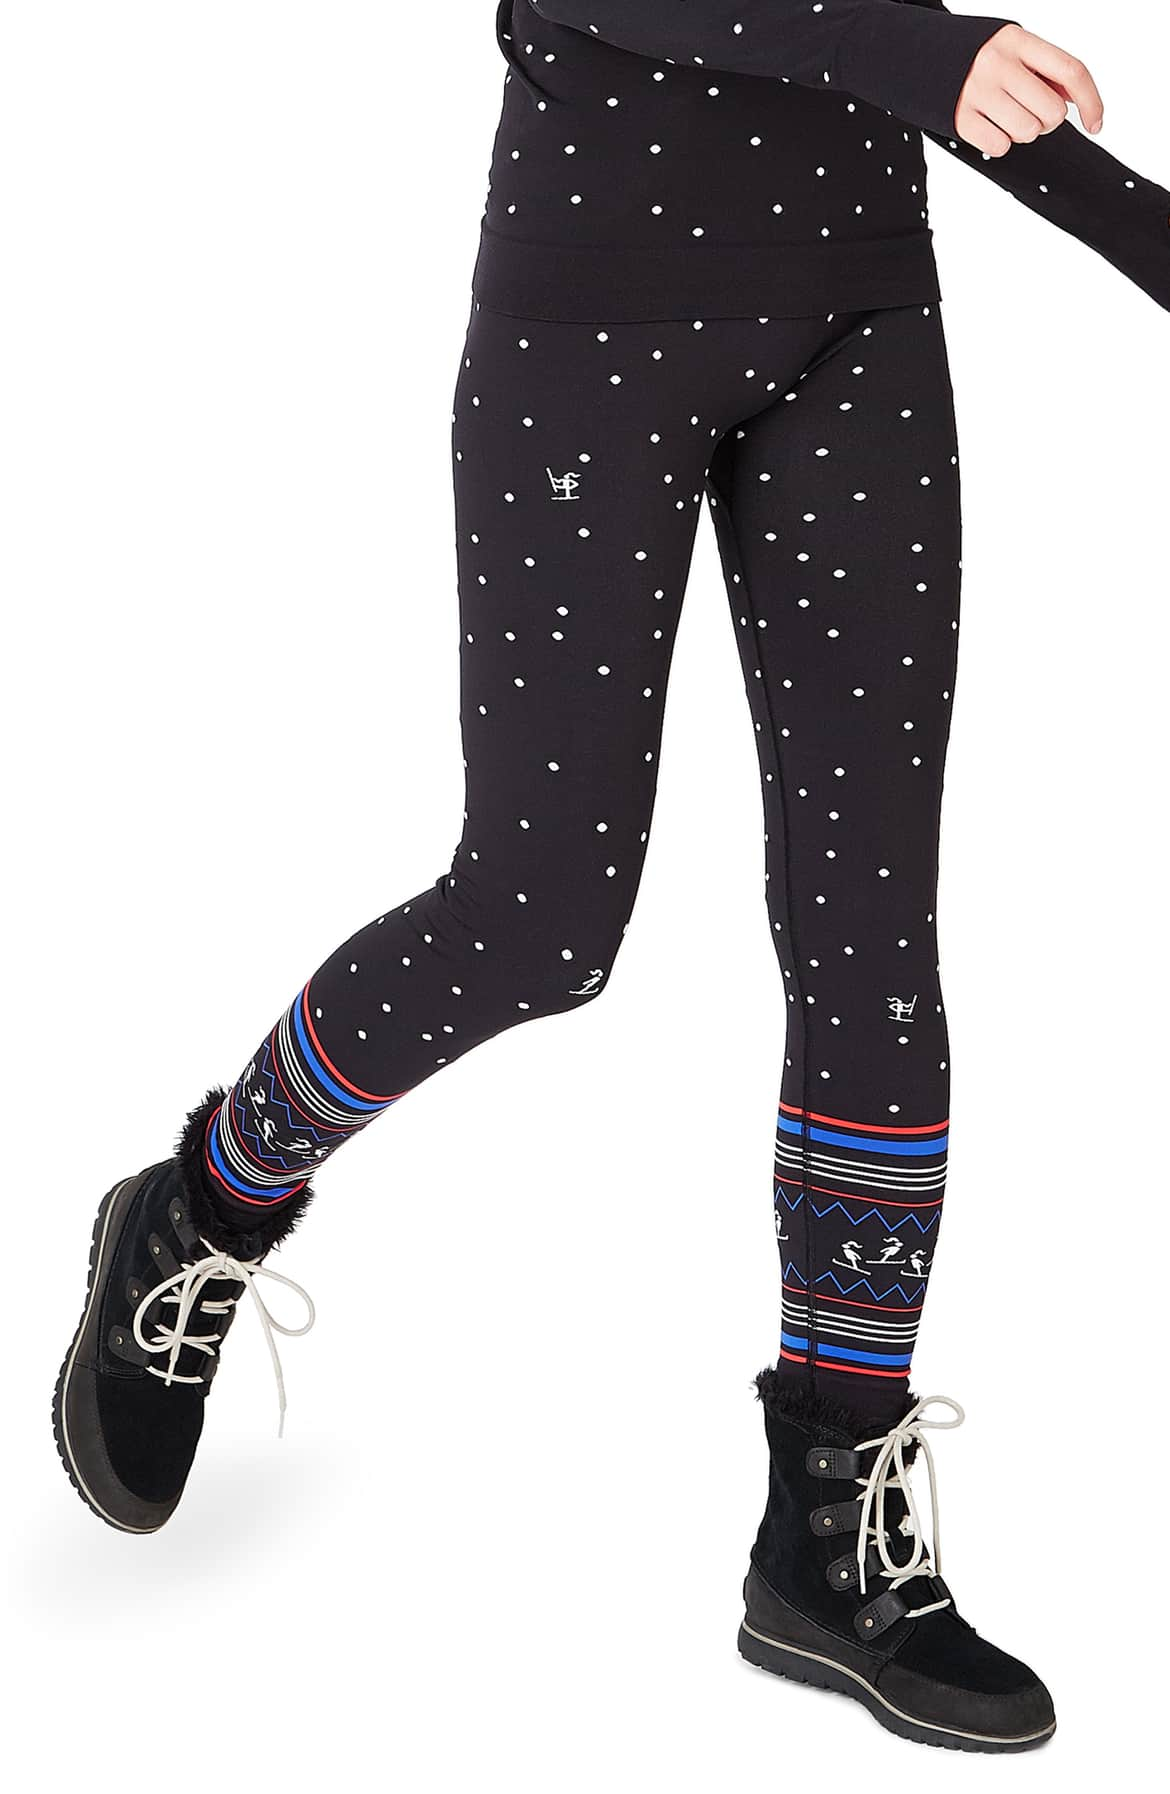 Hit the slopes in these wintry leggings made from sweat-wicking, quick-drying fabric. $105 (Image: Nordstrom){ }